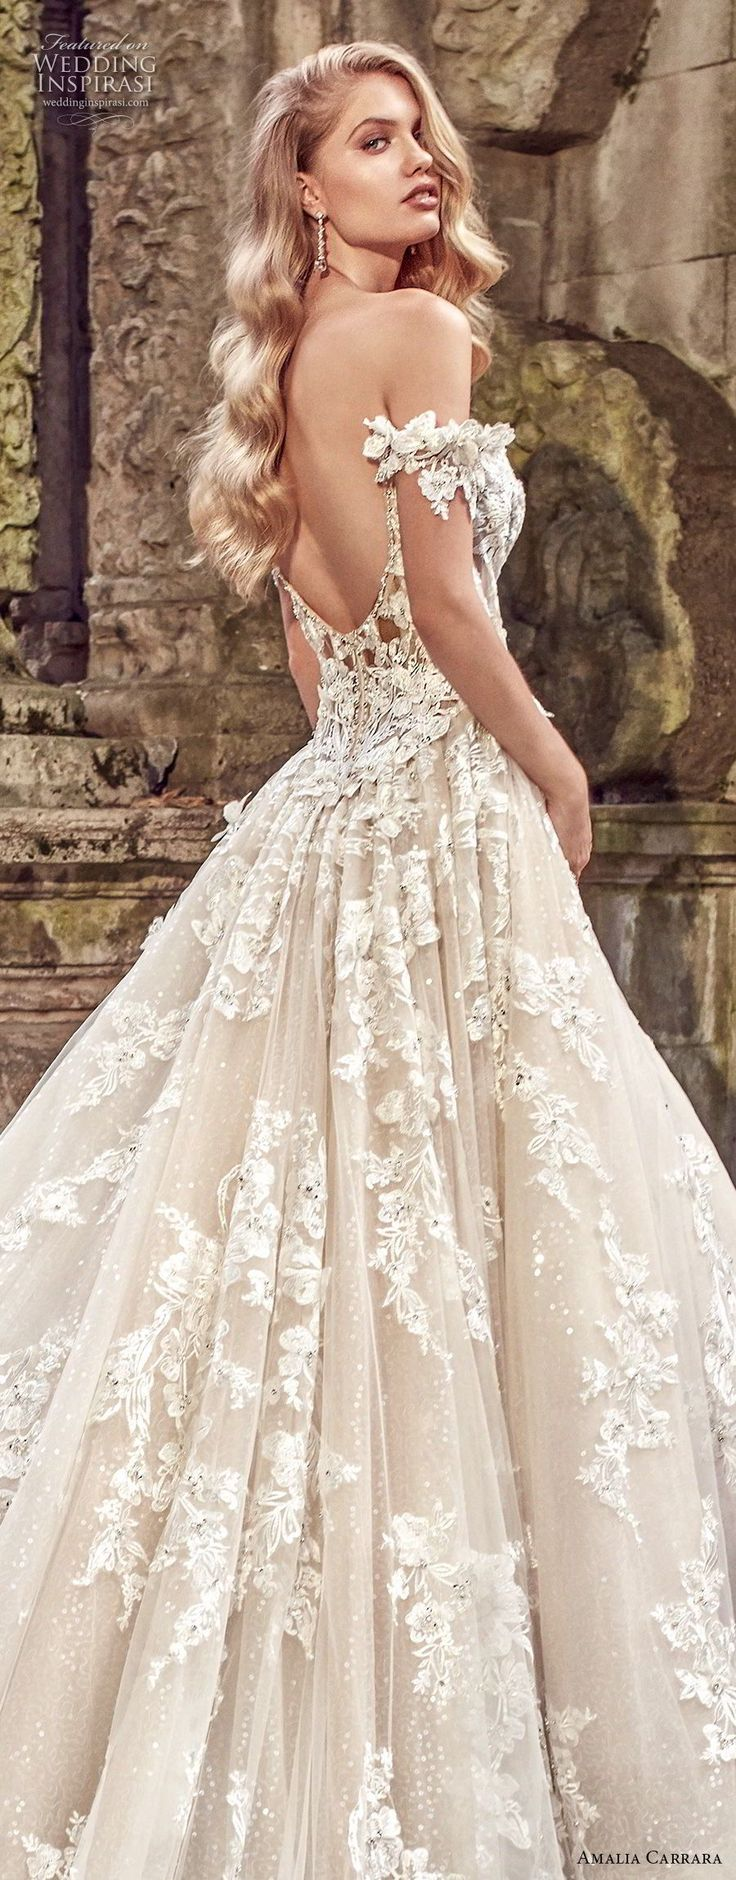 amalia carrara spring 2018 bridal off the shoulder sweetheart neckline heavily embellished bodice romantic princess a line wedding dress open back royal train (1) zbv -- Amalia Carrara Spring 2018 Wedding Dresses